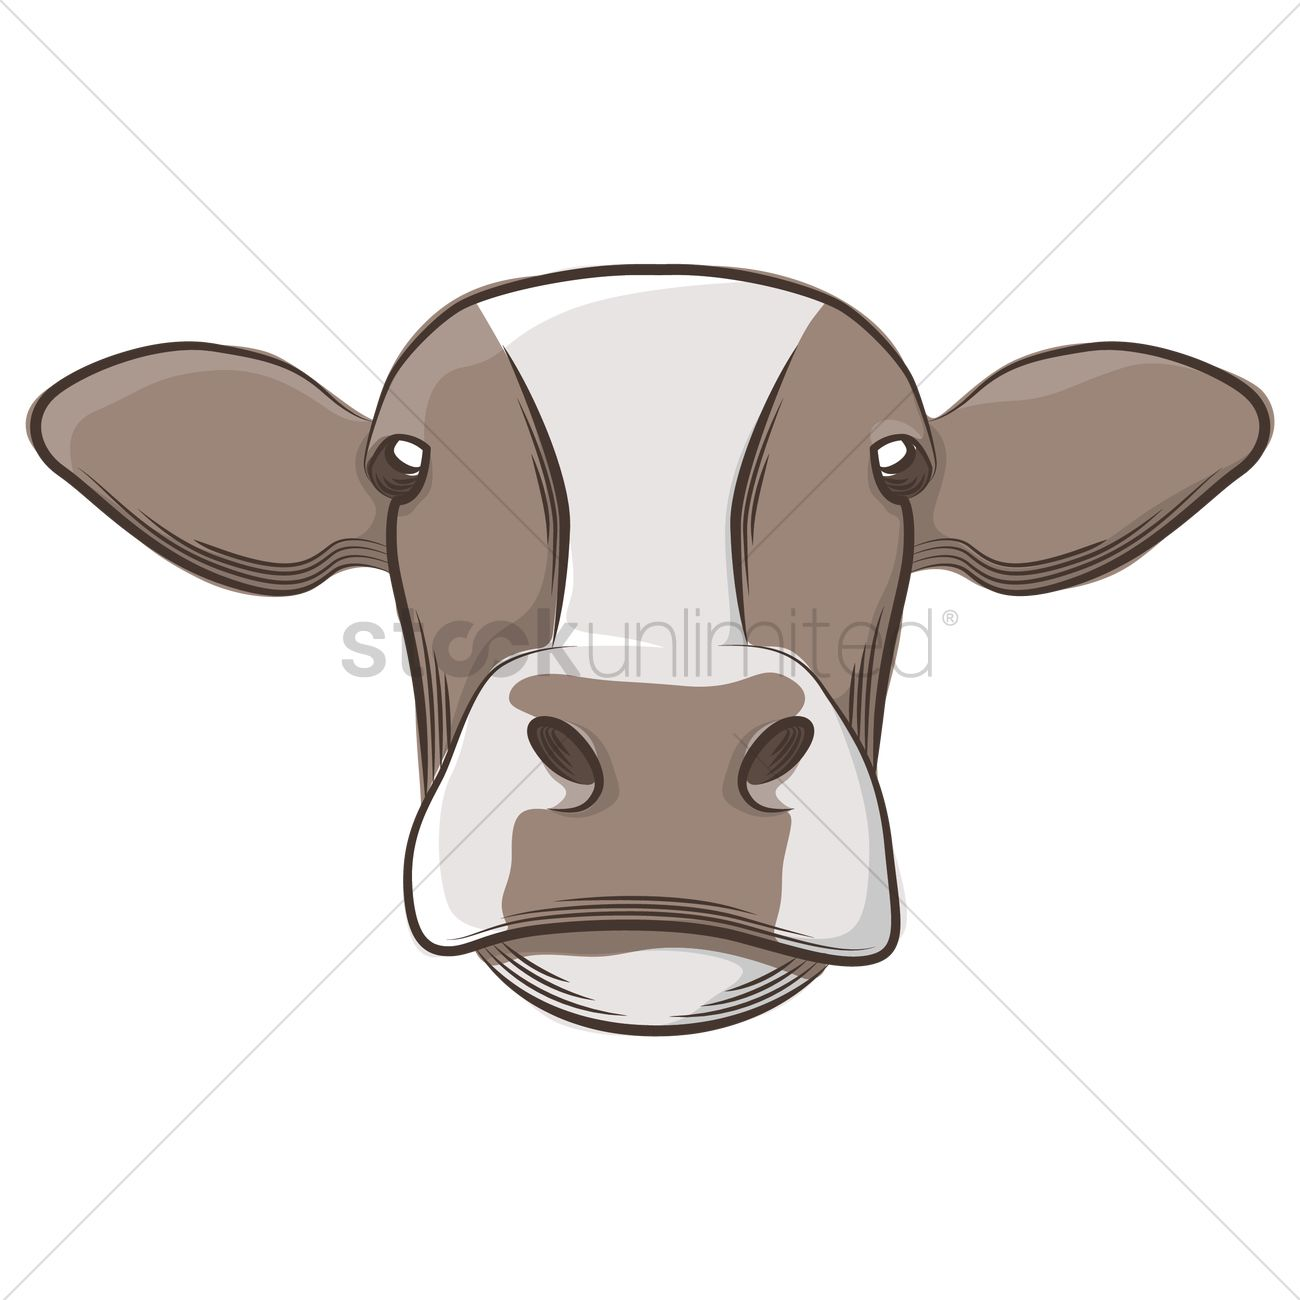 Cow Face Images